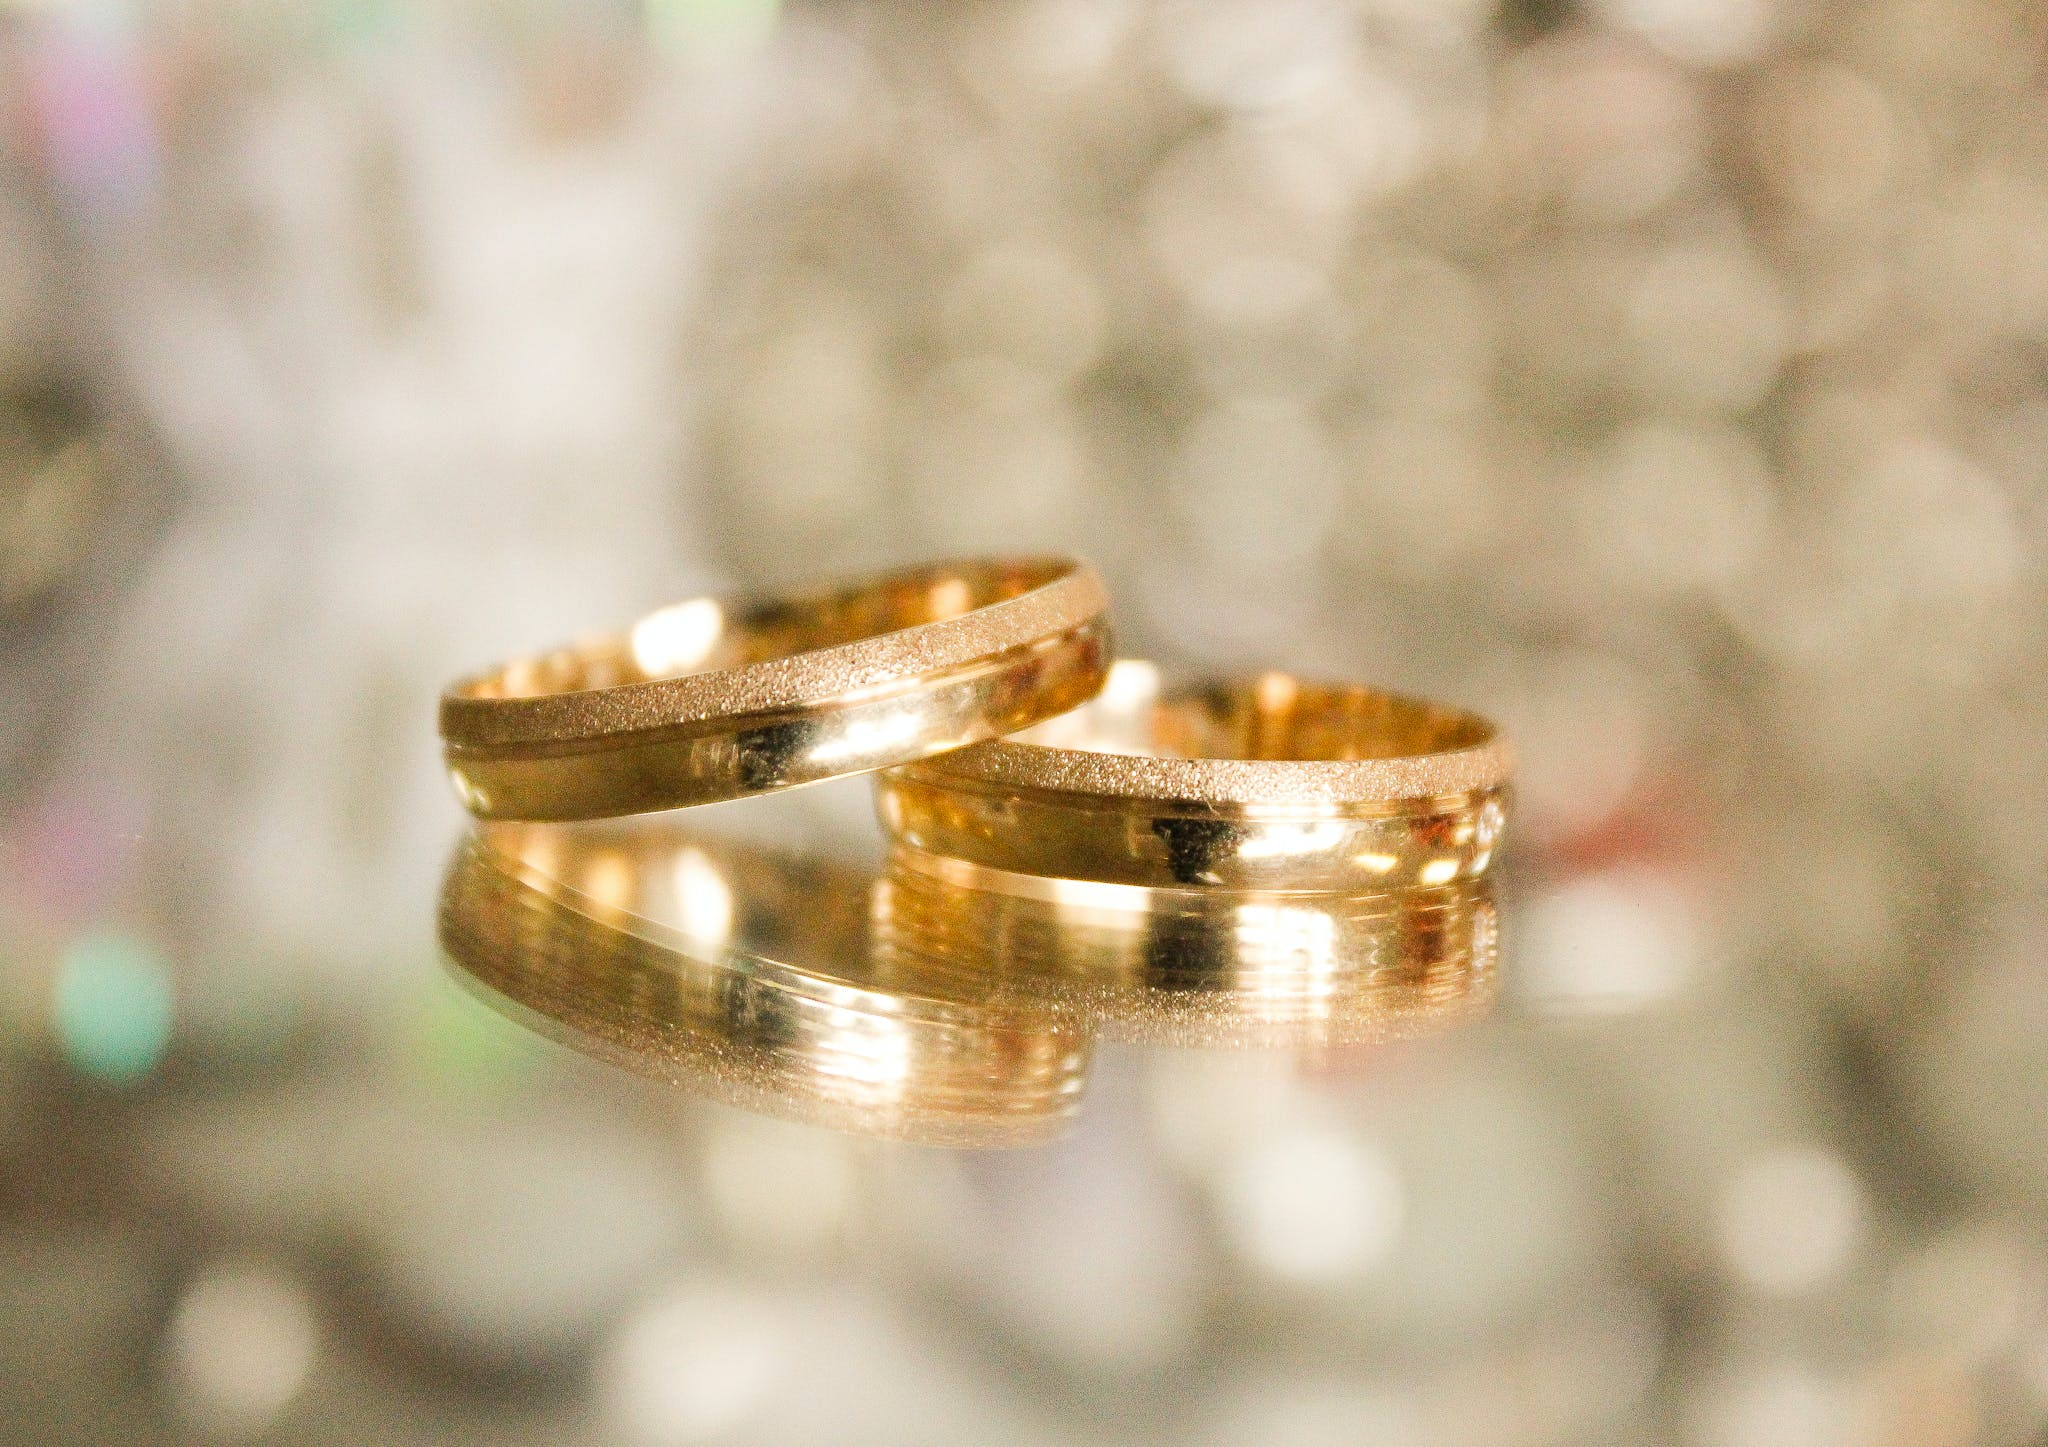 Two Gold-colored Rings in Selective Focus Photography